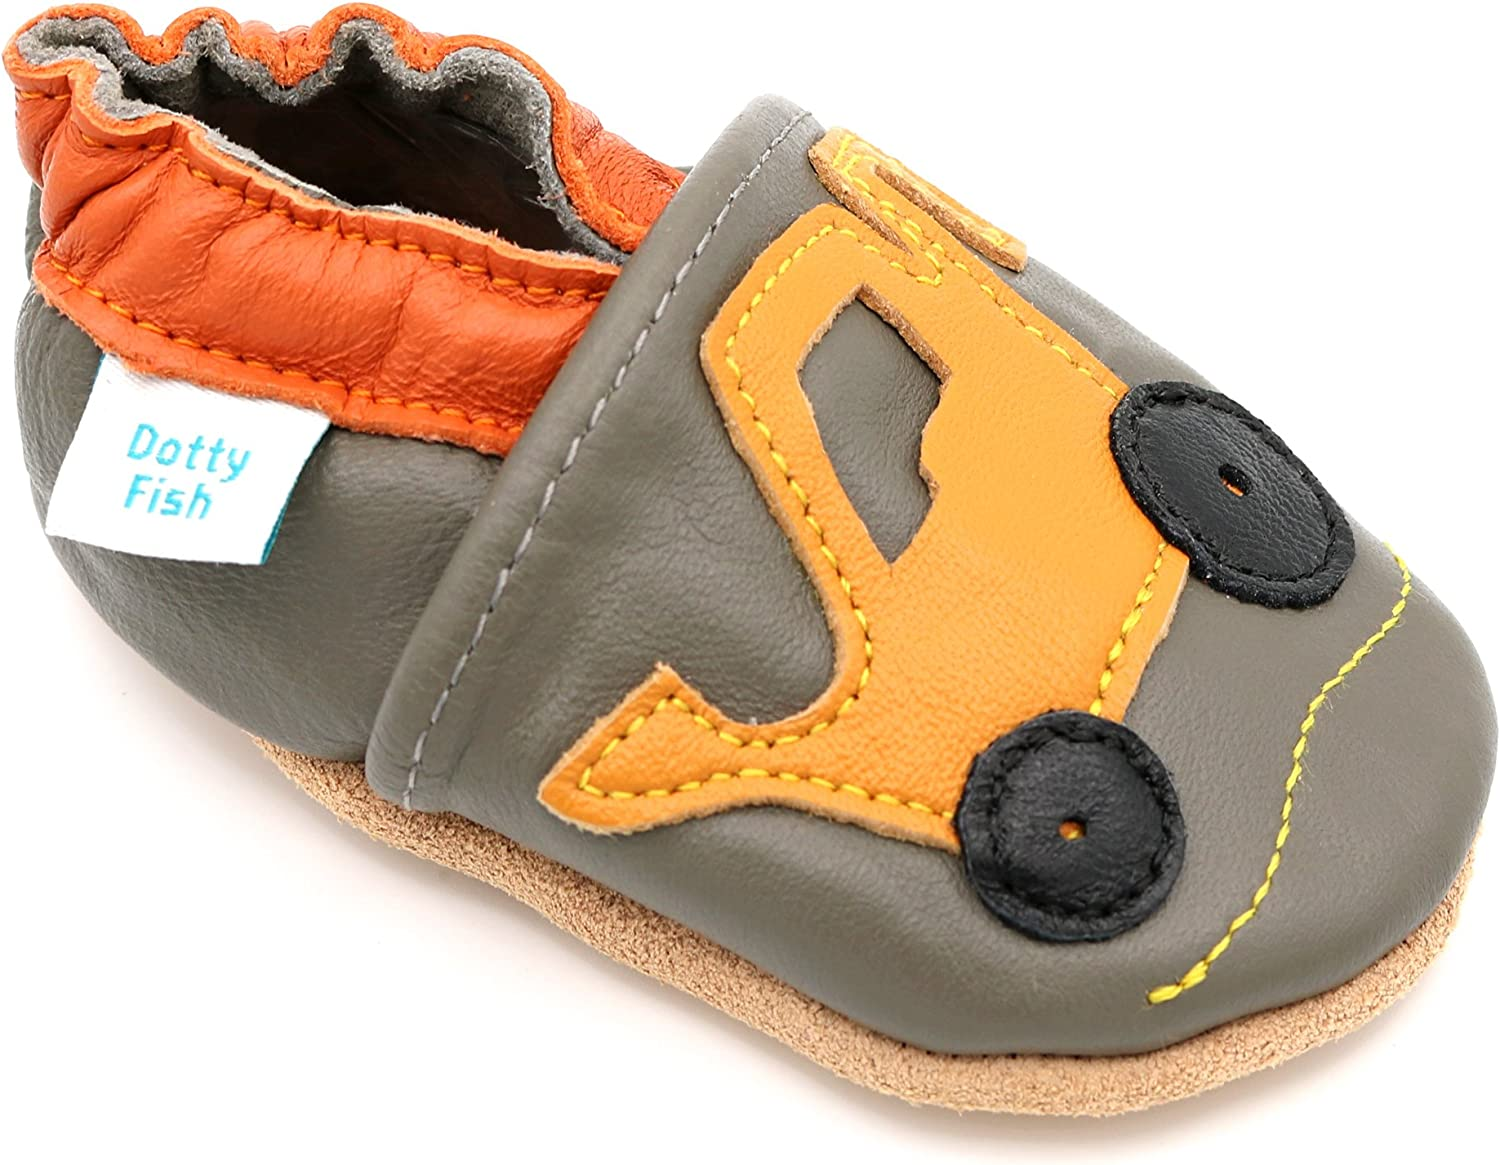 NEW Kids Children Boys Slippers Sandals Natural Leather  Cars NON SLIP SOLE